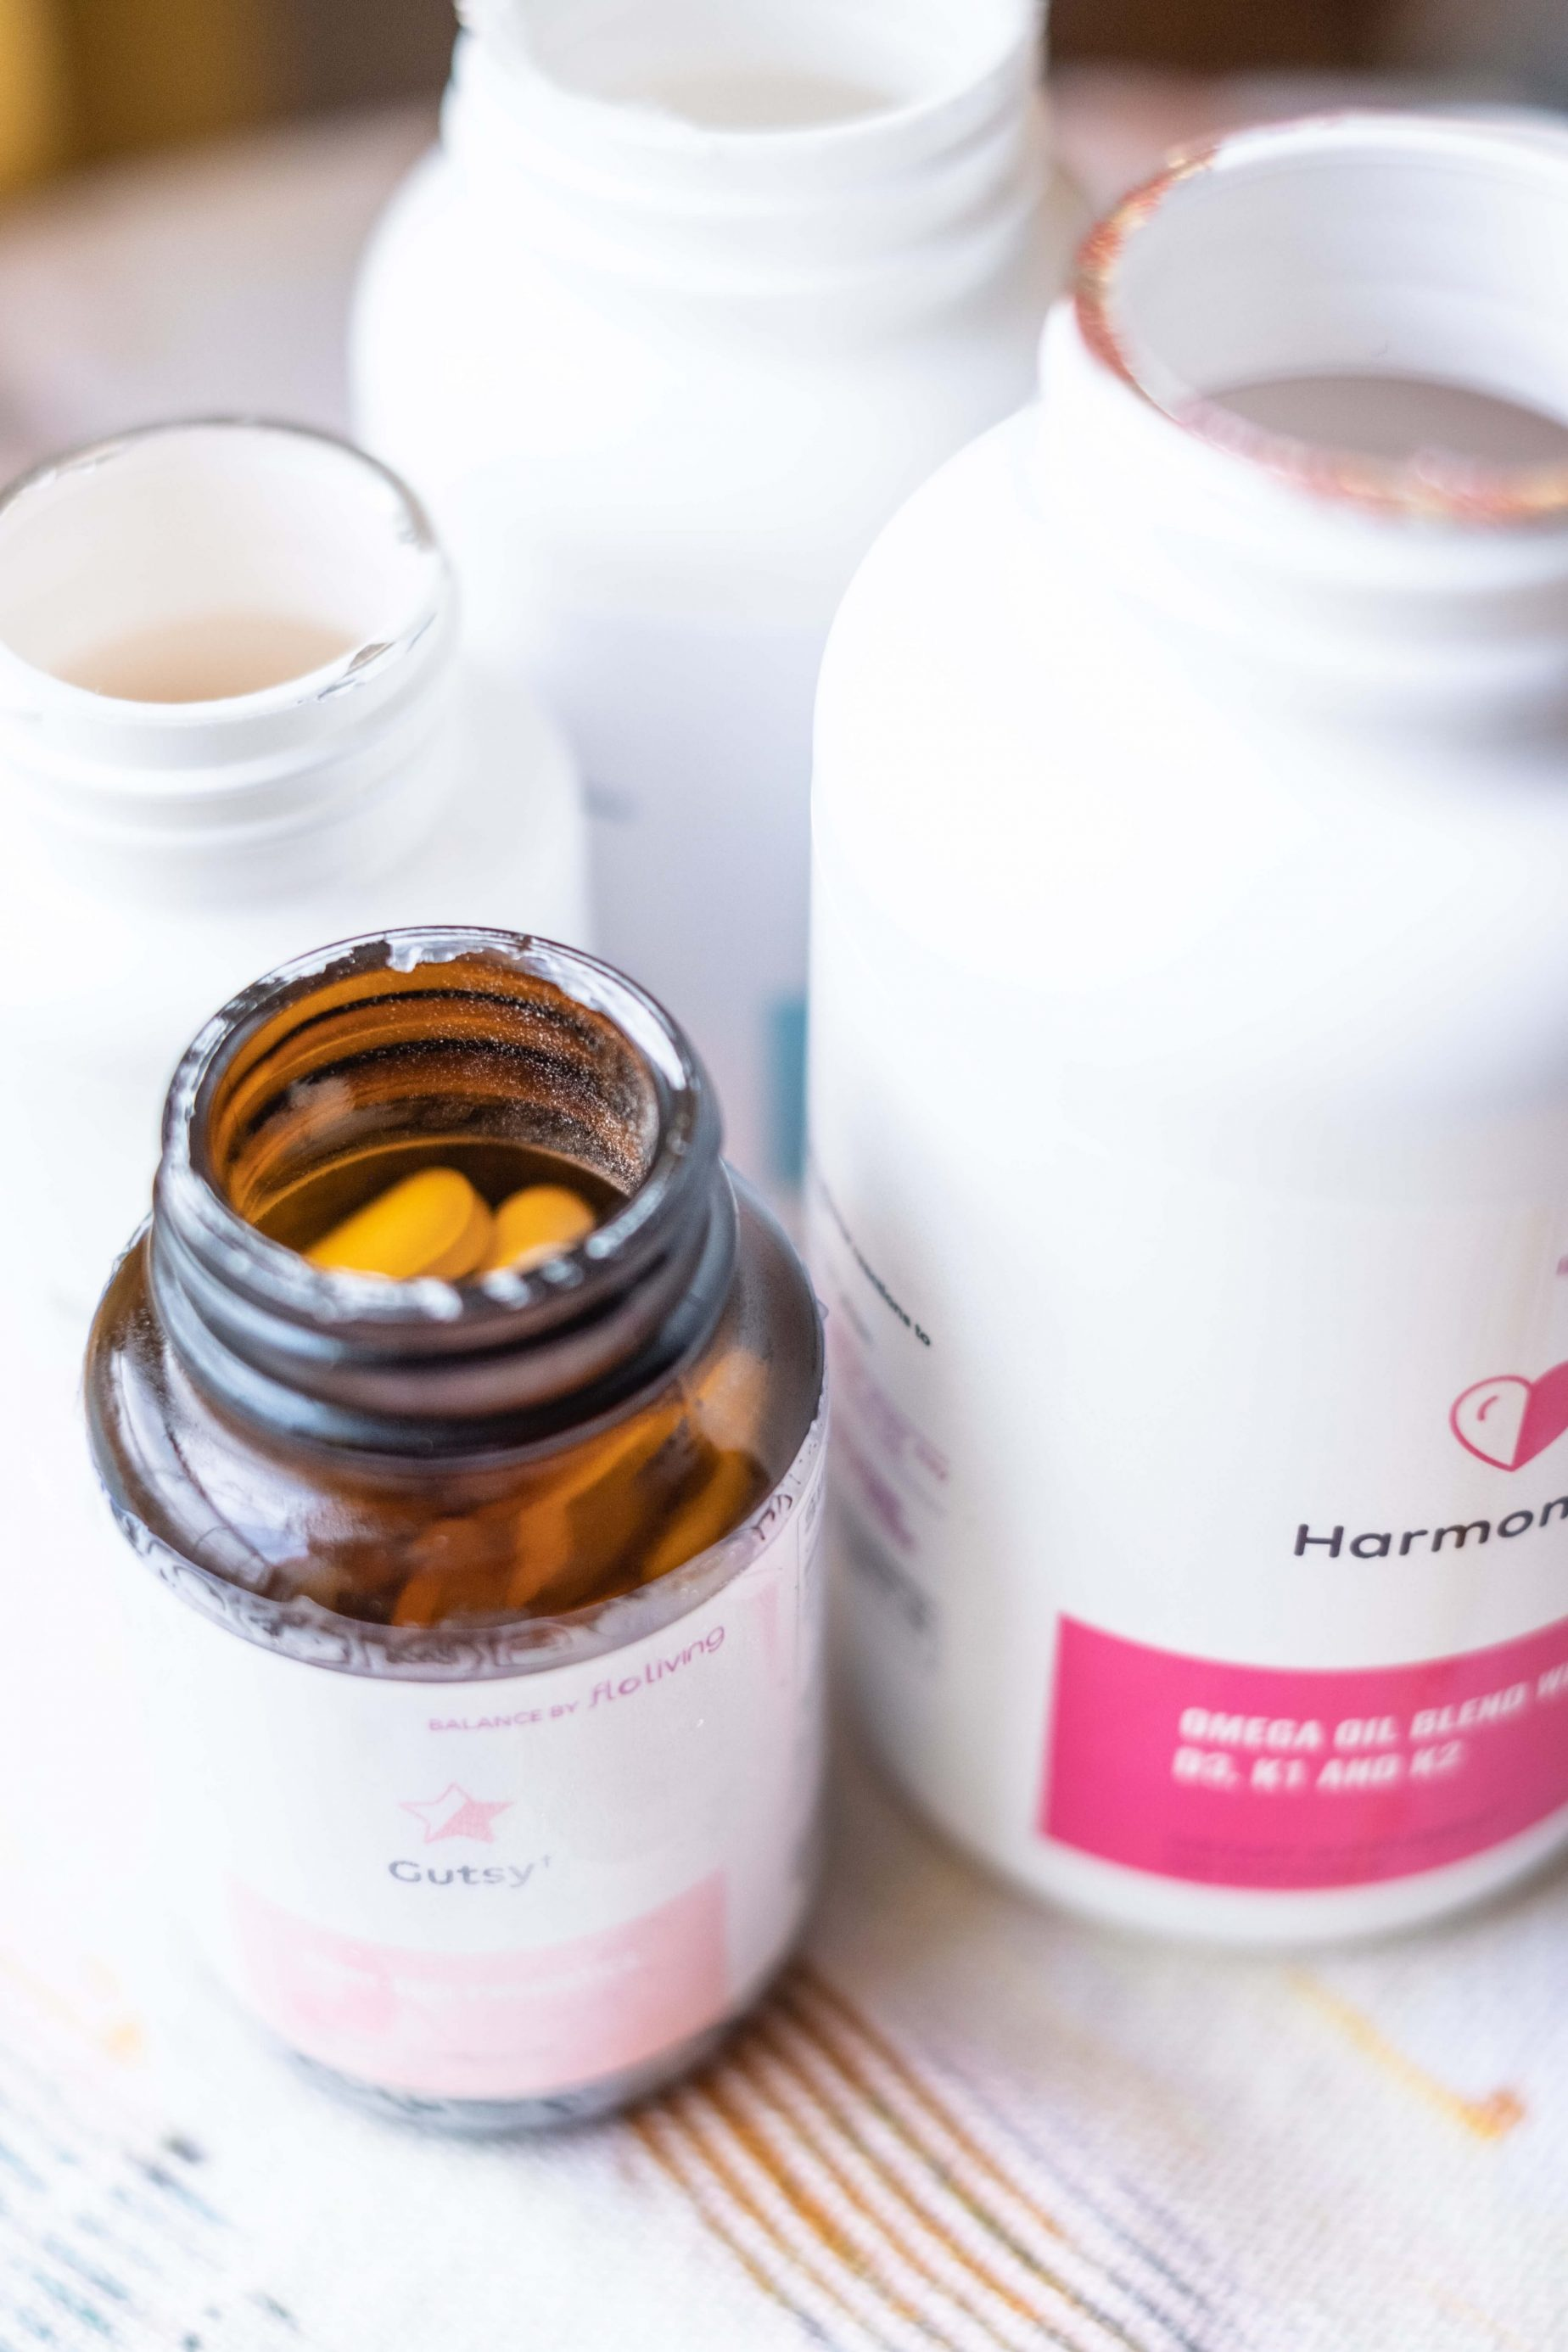 Floliving Supplements Review - Do They Really Work- #whatsavvysaid #wellness #pcos #supplements #floliving #flolivingreview